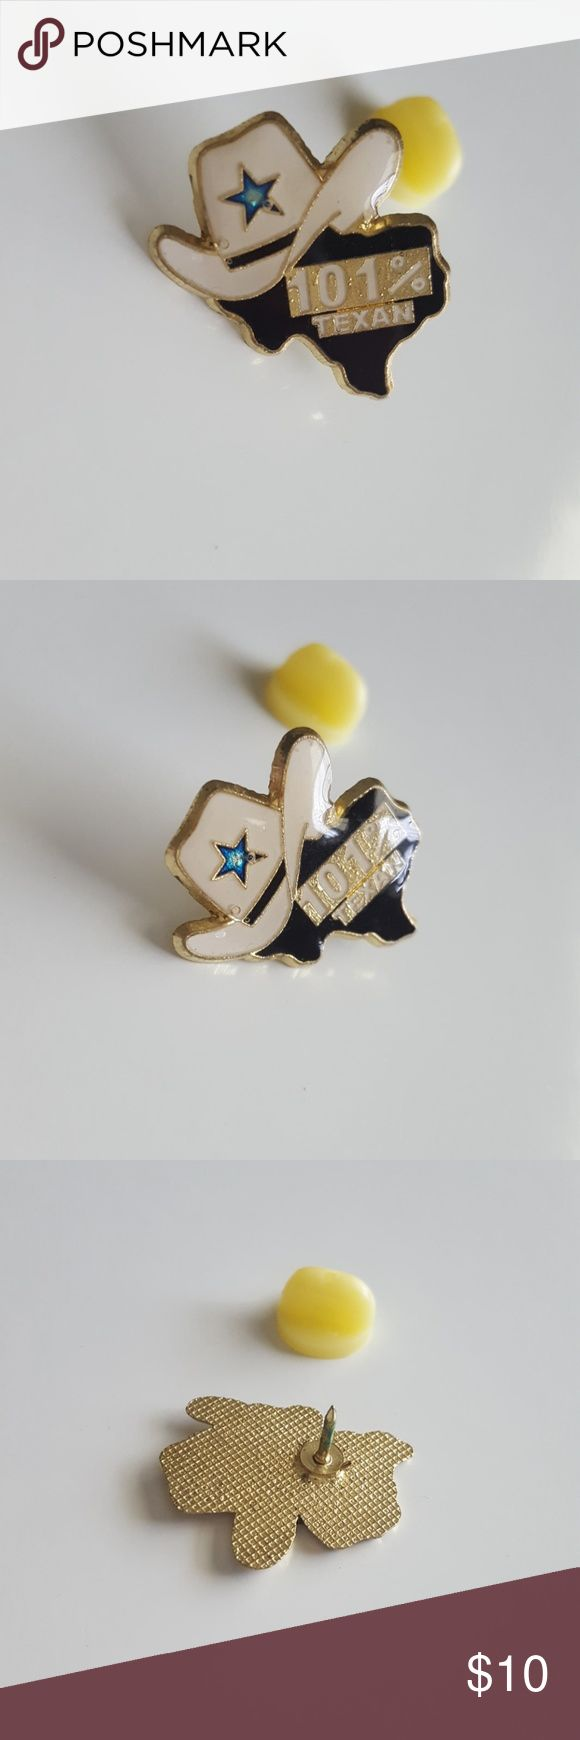 """101% Texan Pin This lovely vintage pin is of a cowboy hat with a blue star atop of the outline of the state of Texas. It says 101% Texan across the state with gold trim. Great with your favorite shirt and jeans.  Other great accessories listed in my closet.  Measurements are 1"""" long and .65"""" wide. Vintage Jewelry Brooches"""